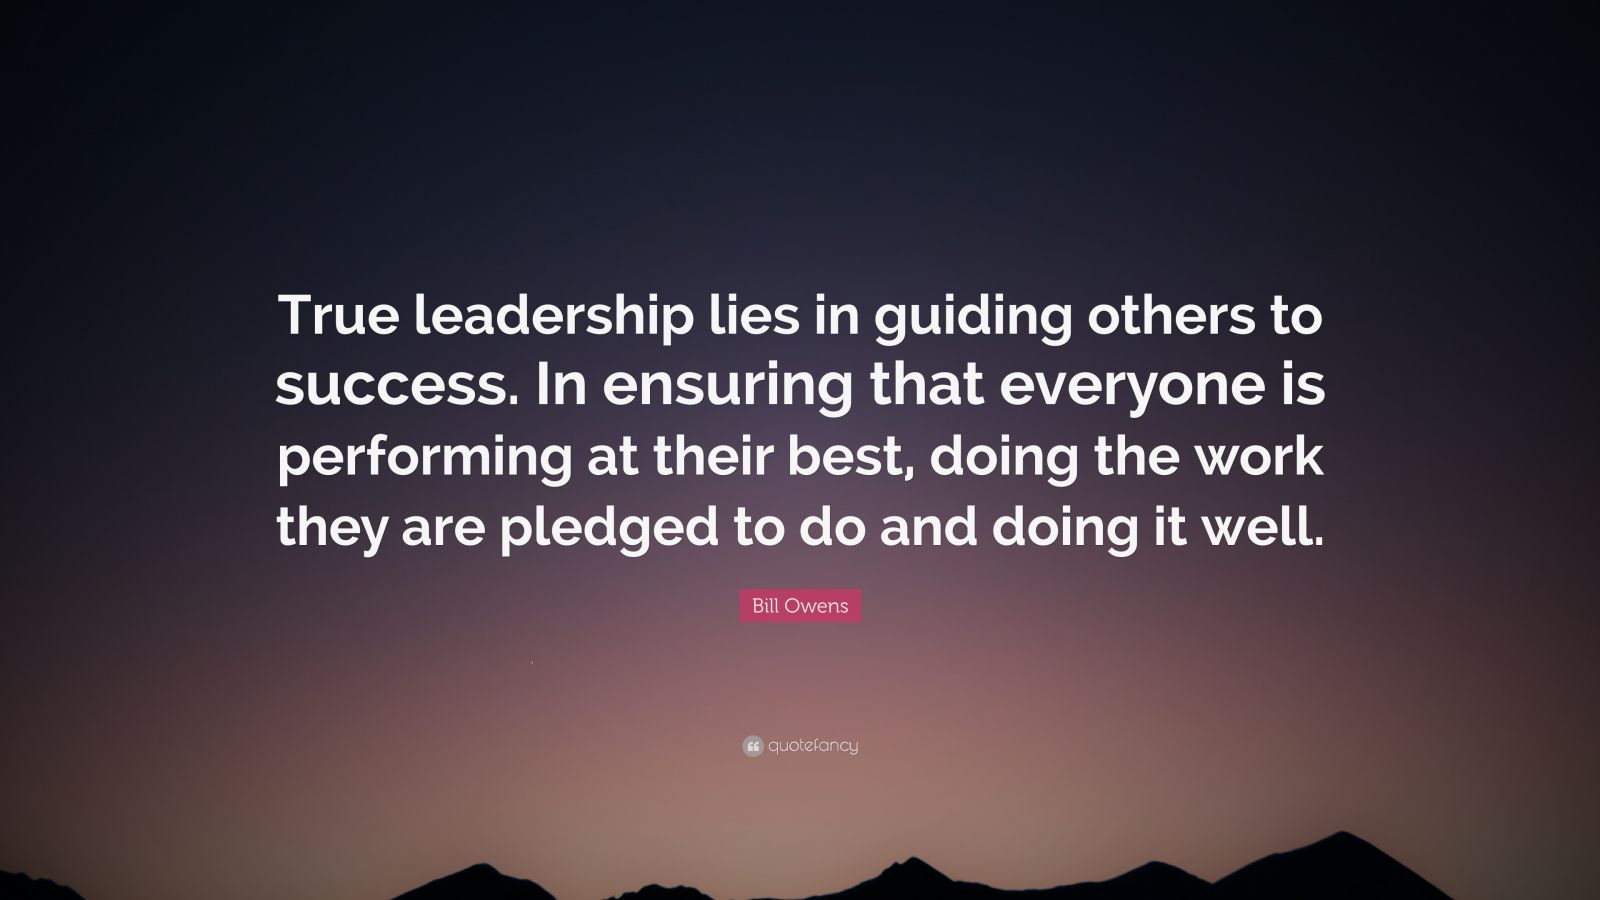 "Bill Owens Quote: ""True leadership lies in guiding others to success. In ensuring that everyone is performing at their best, doing the work they are pledged to do and doing it well."""